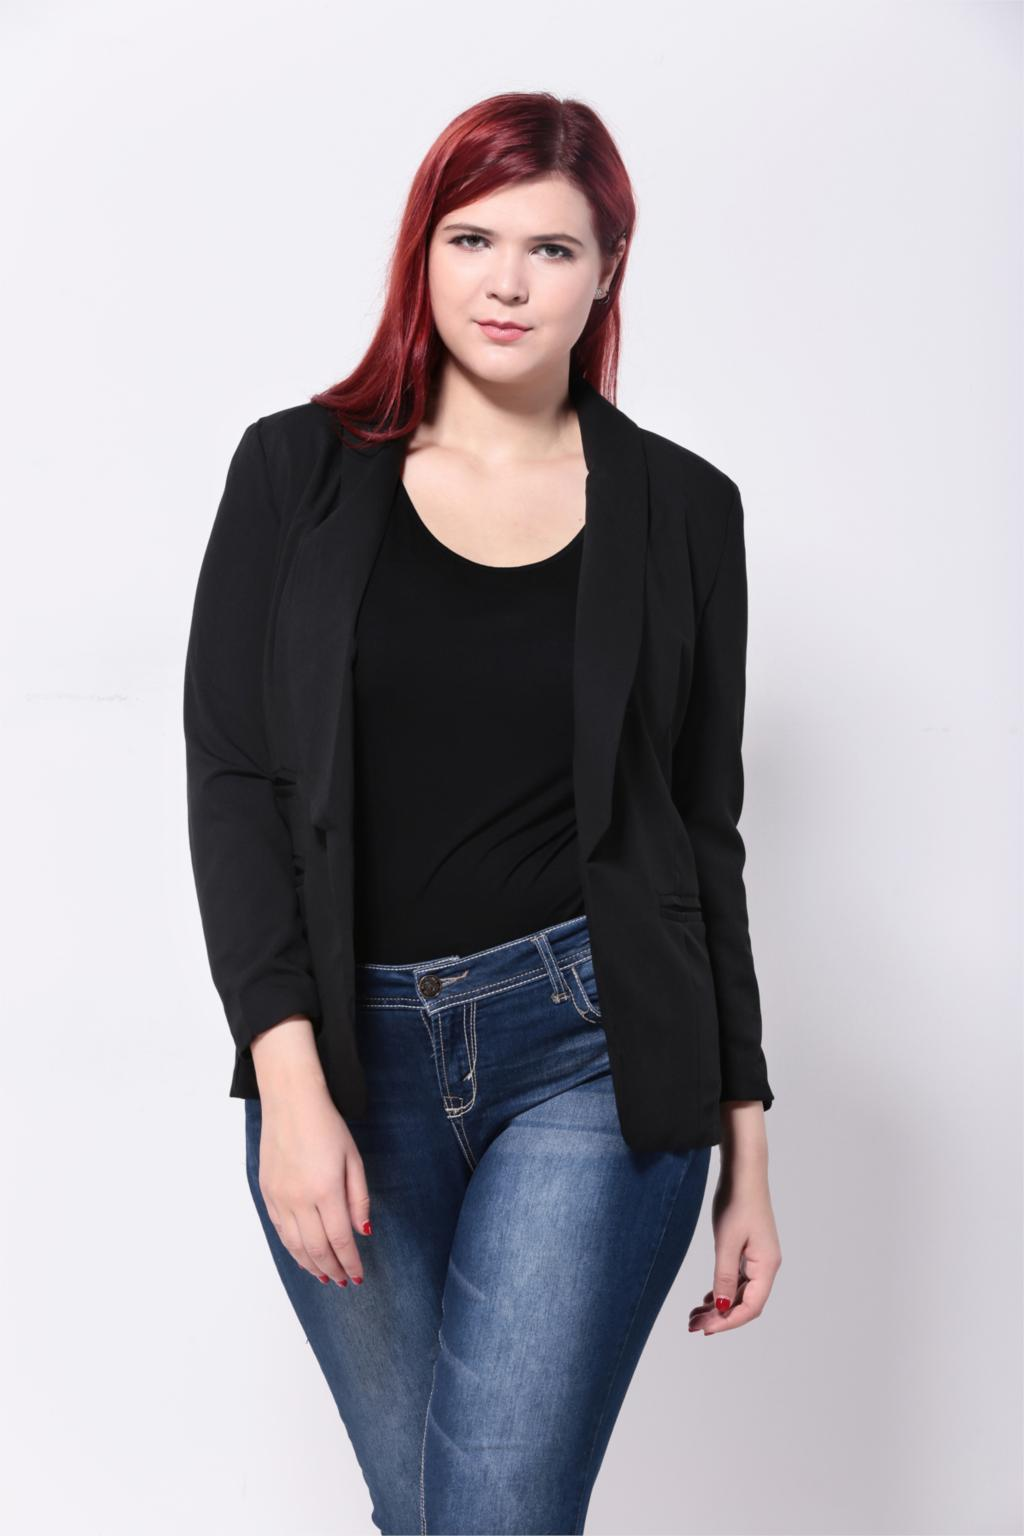 Bundle up in Dillard's women's plus size jacket and vest collections available in the latest styles. From women's plus size blazers, lightweight jackets and work-ready jackets we have all your women's plus size jacket and vest needs covered.